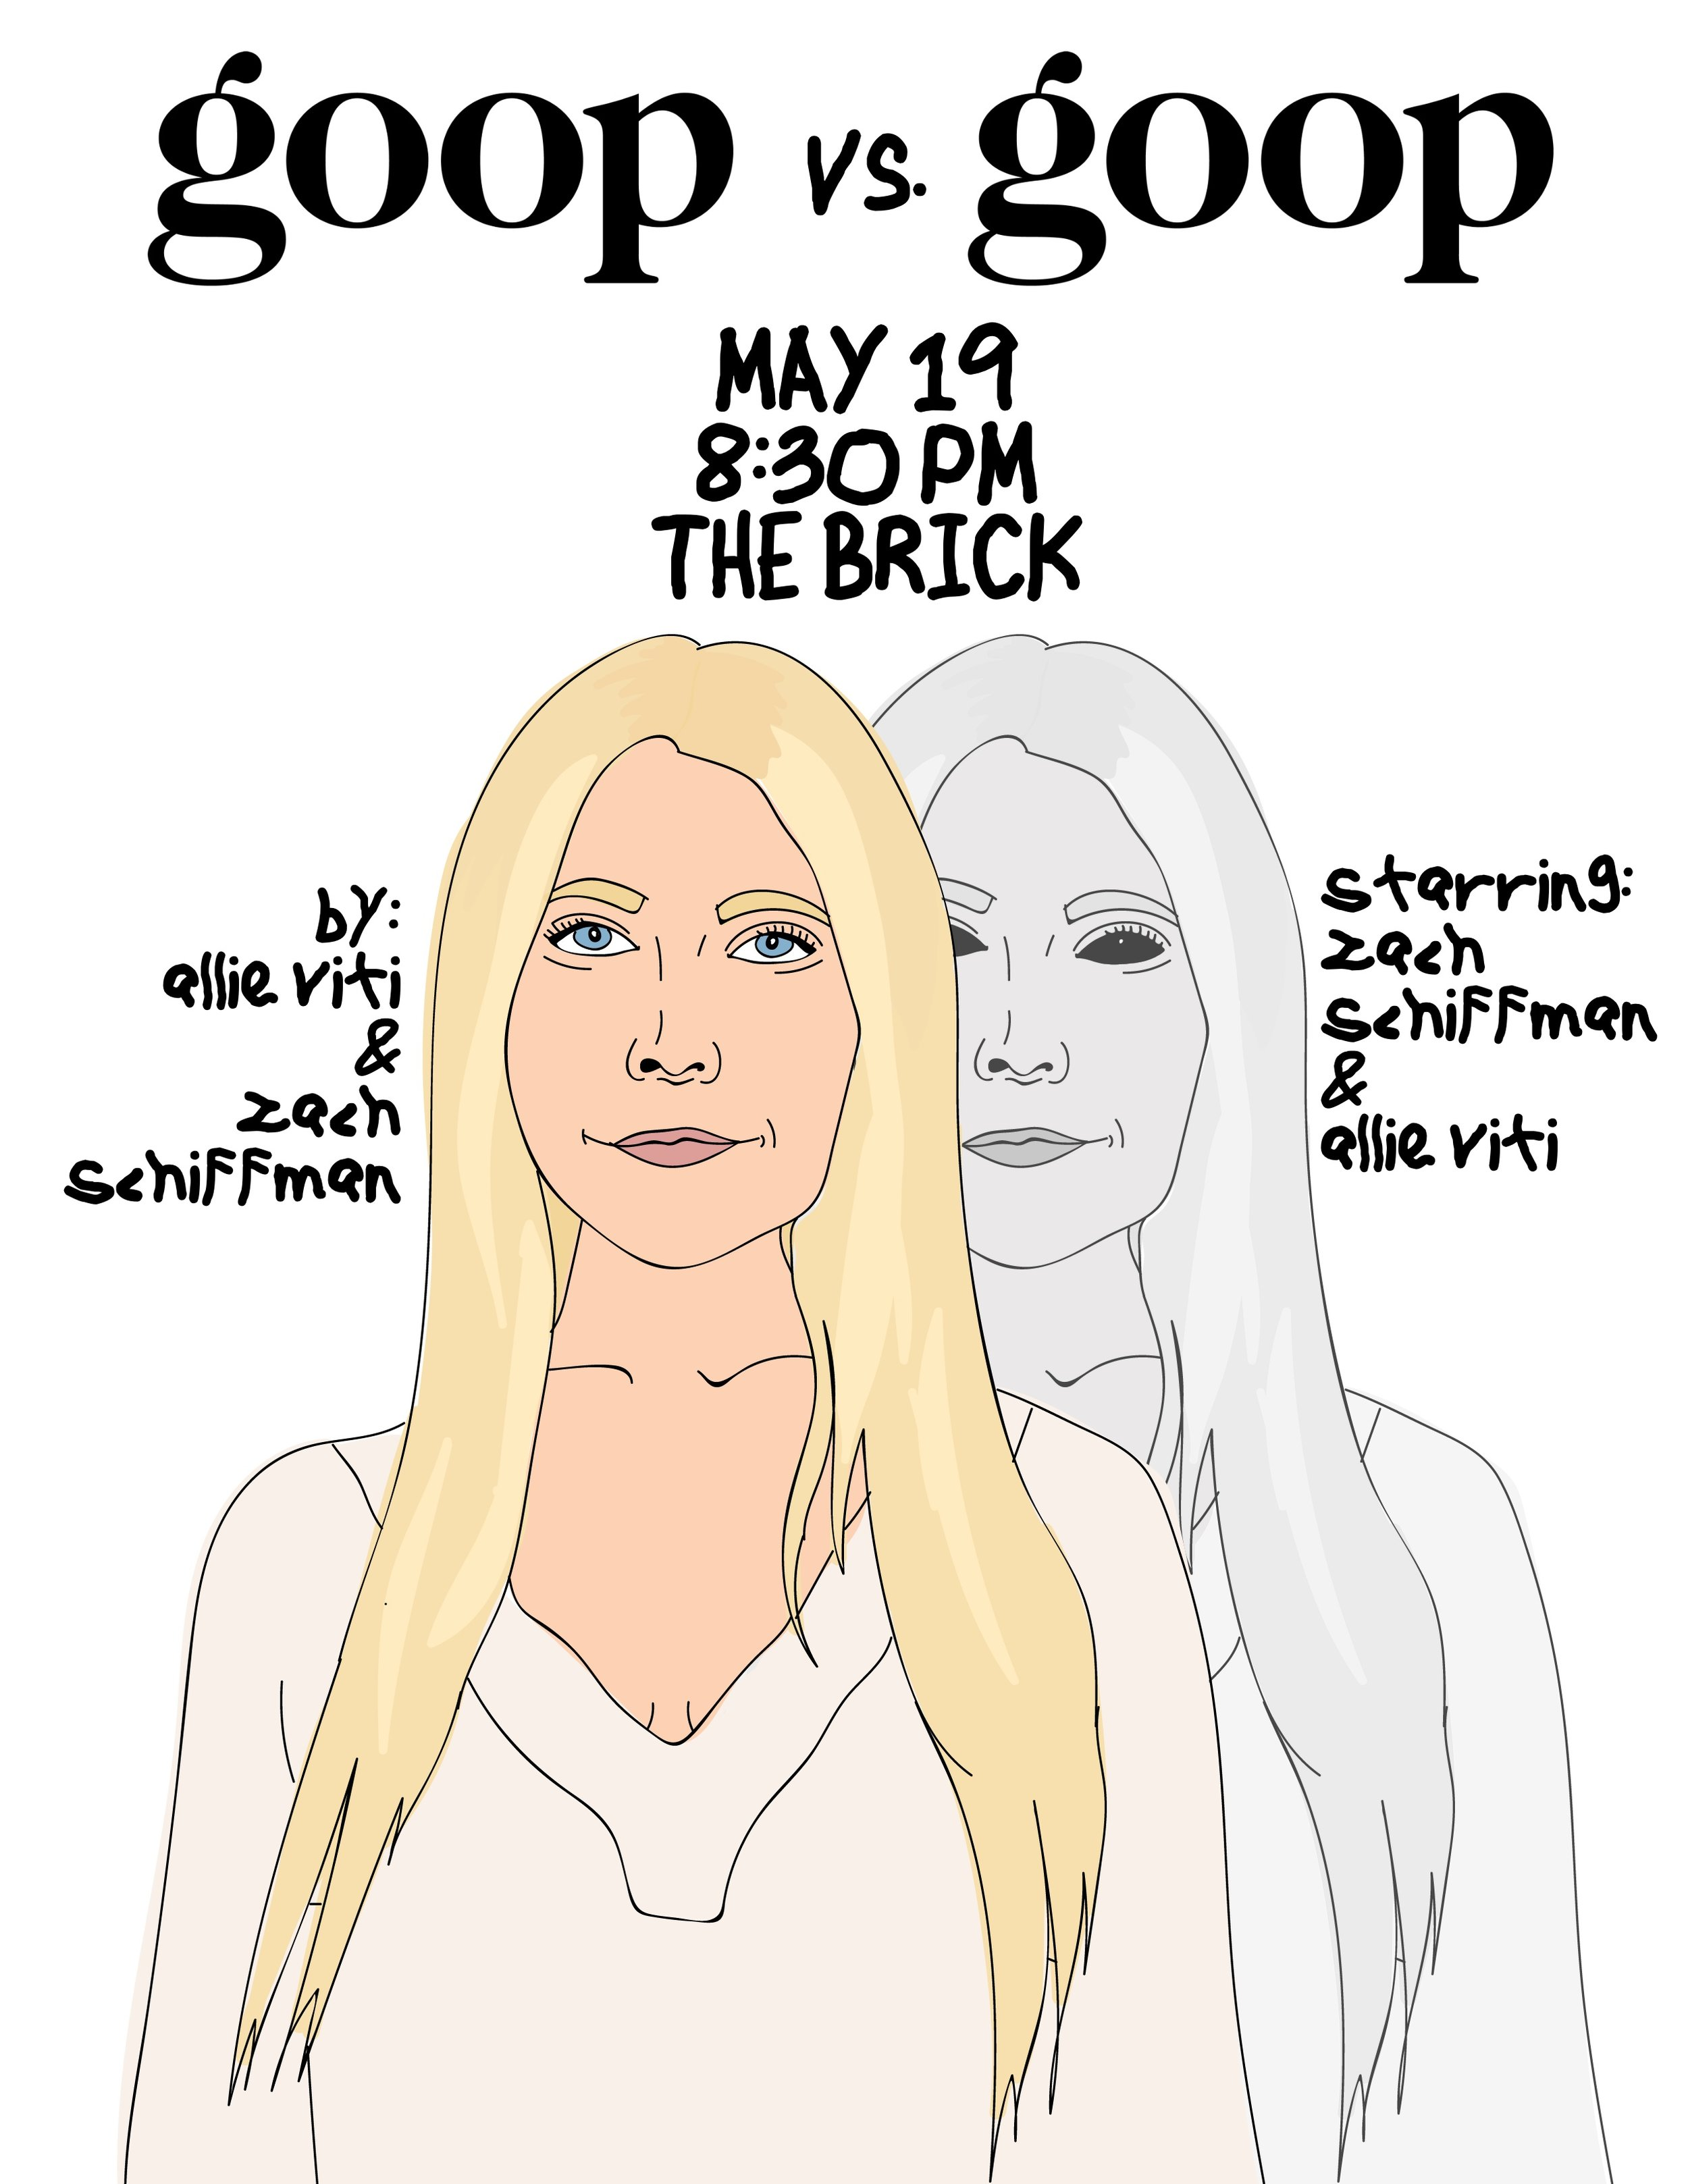 - goop vs. goopIcon. Renaissance woman. Titan of Business. Mother of two (we think). Shiny. Guest star on Glee / Academy Award Winner. Have you gotten there yet? We're talking about Gwyneth f*ck*ng Paltrow. In this half hour drama, Allie Viti and Zach Schiffman star as Gwyneth Paltrow and her worst enemy: herself. Confined to her country home attic, after a cleanse-induced dizzy spell, Gwyneth goes head to head with her biggest insecurities. Can she really have it all? Find out at this long, hard look in the mirror: Goop vs. Goop.